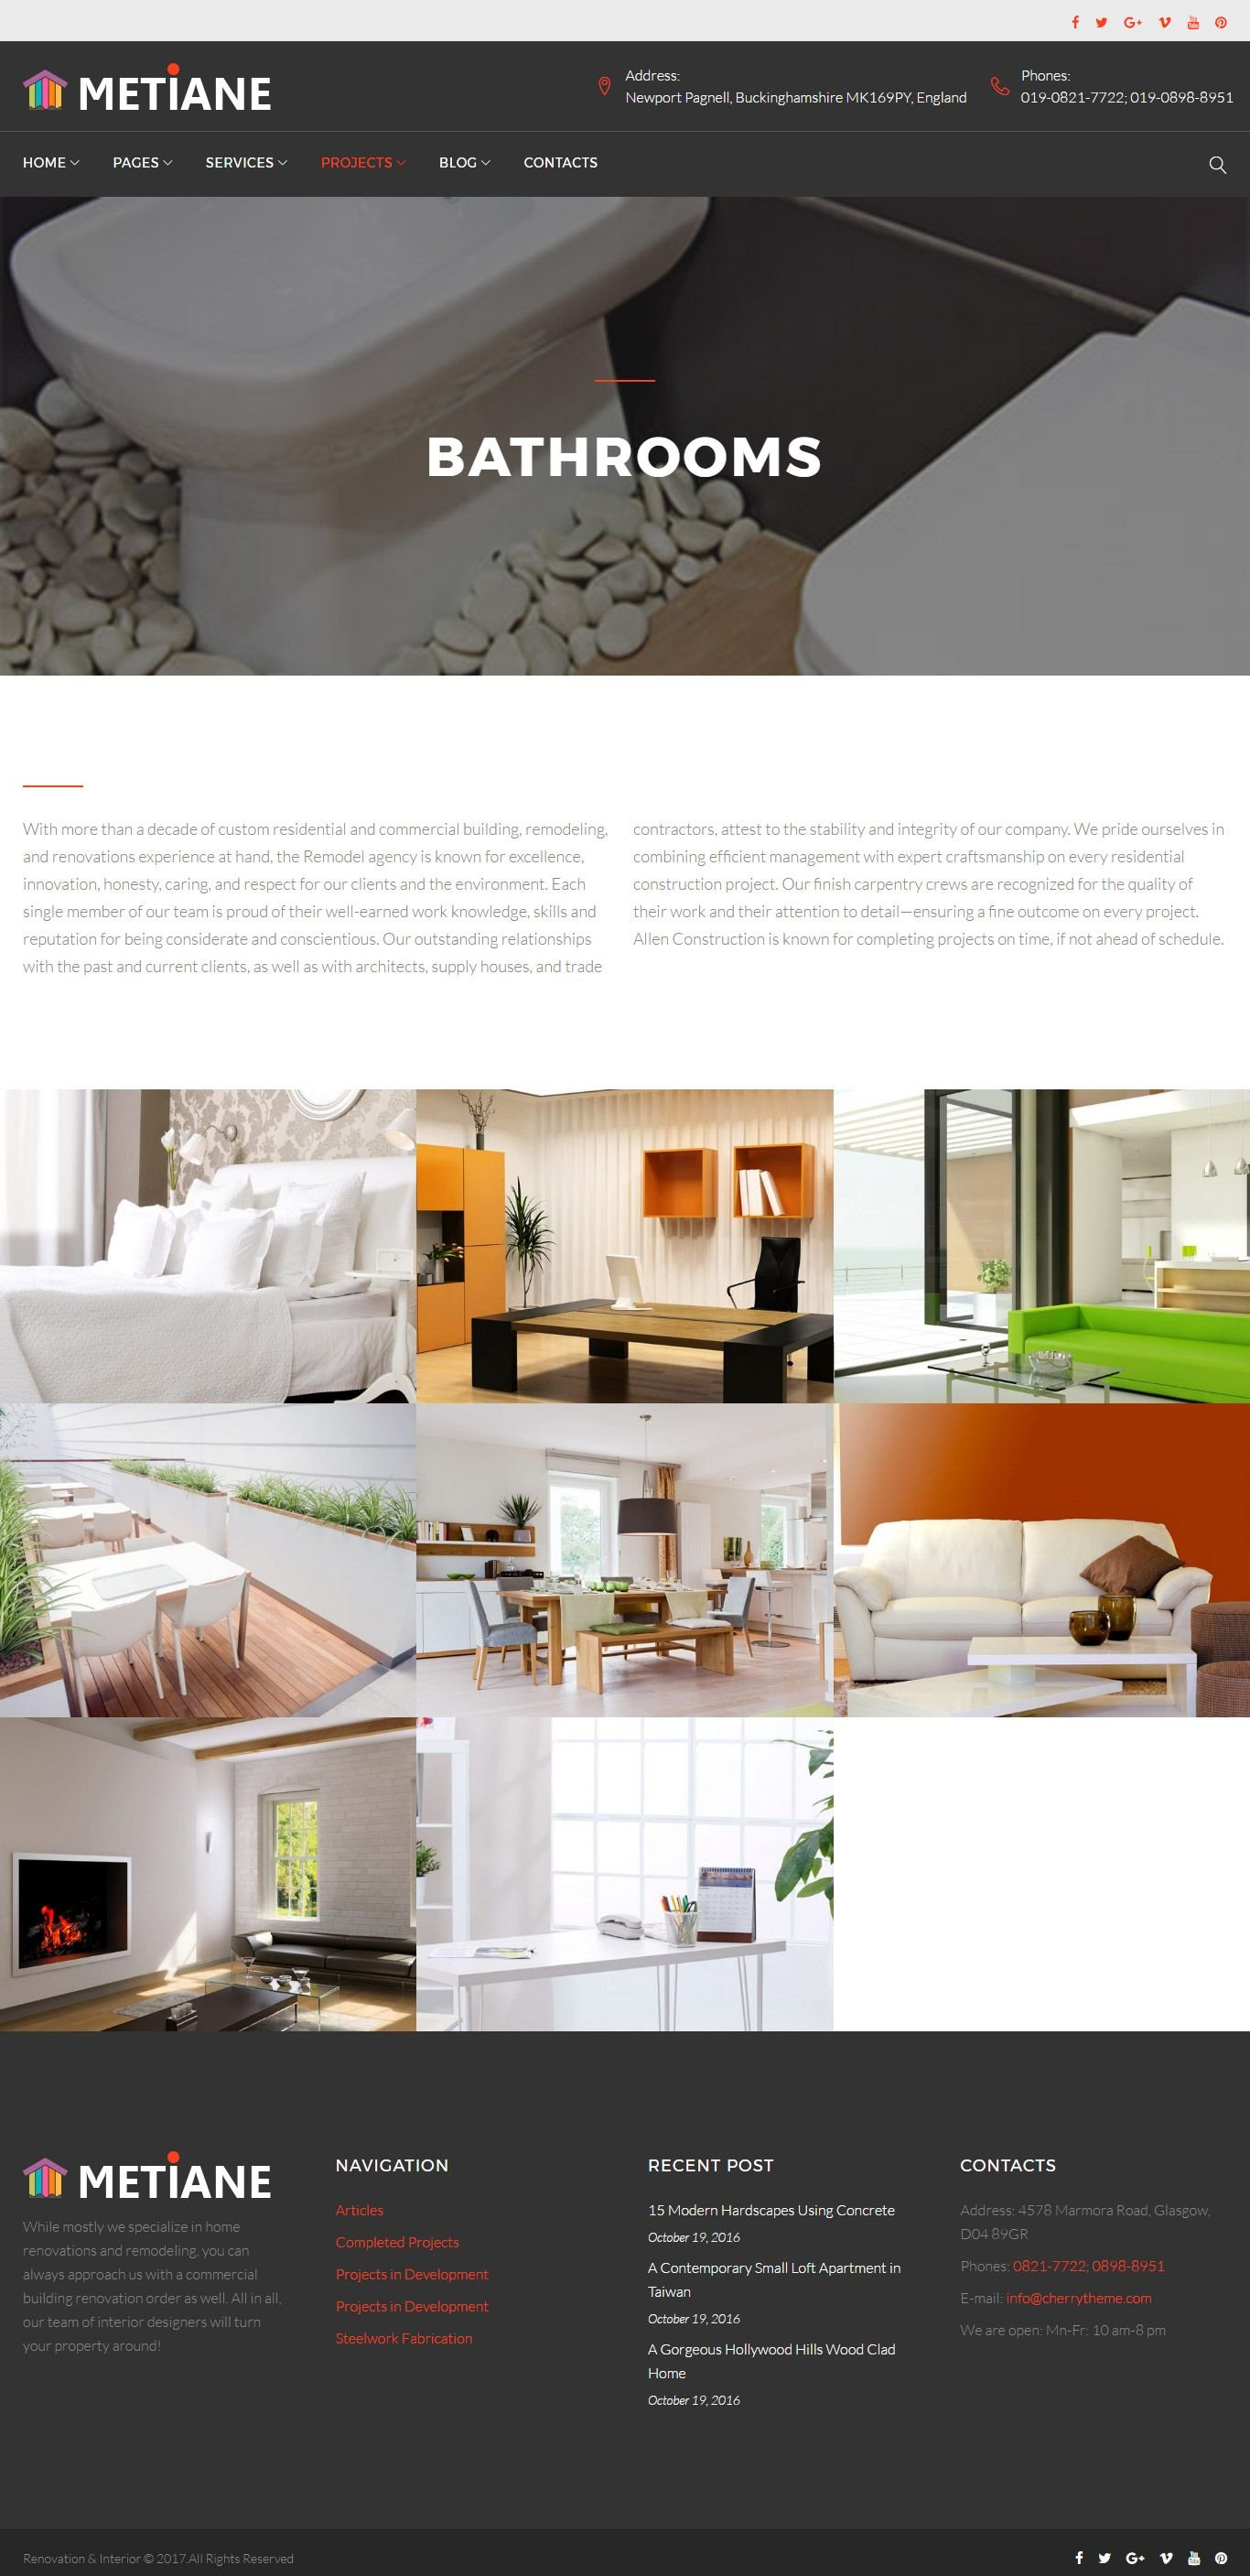 Metiane interior design wordpress theme codester for Interior design wordpress theme